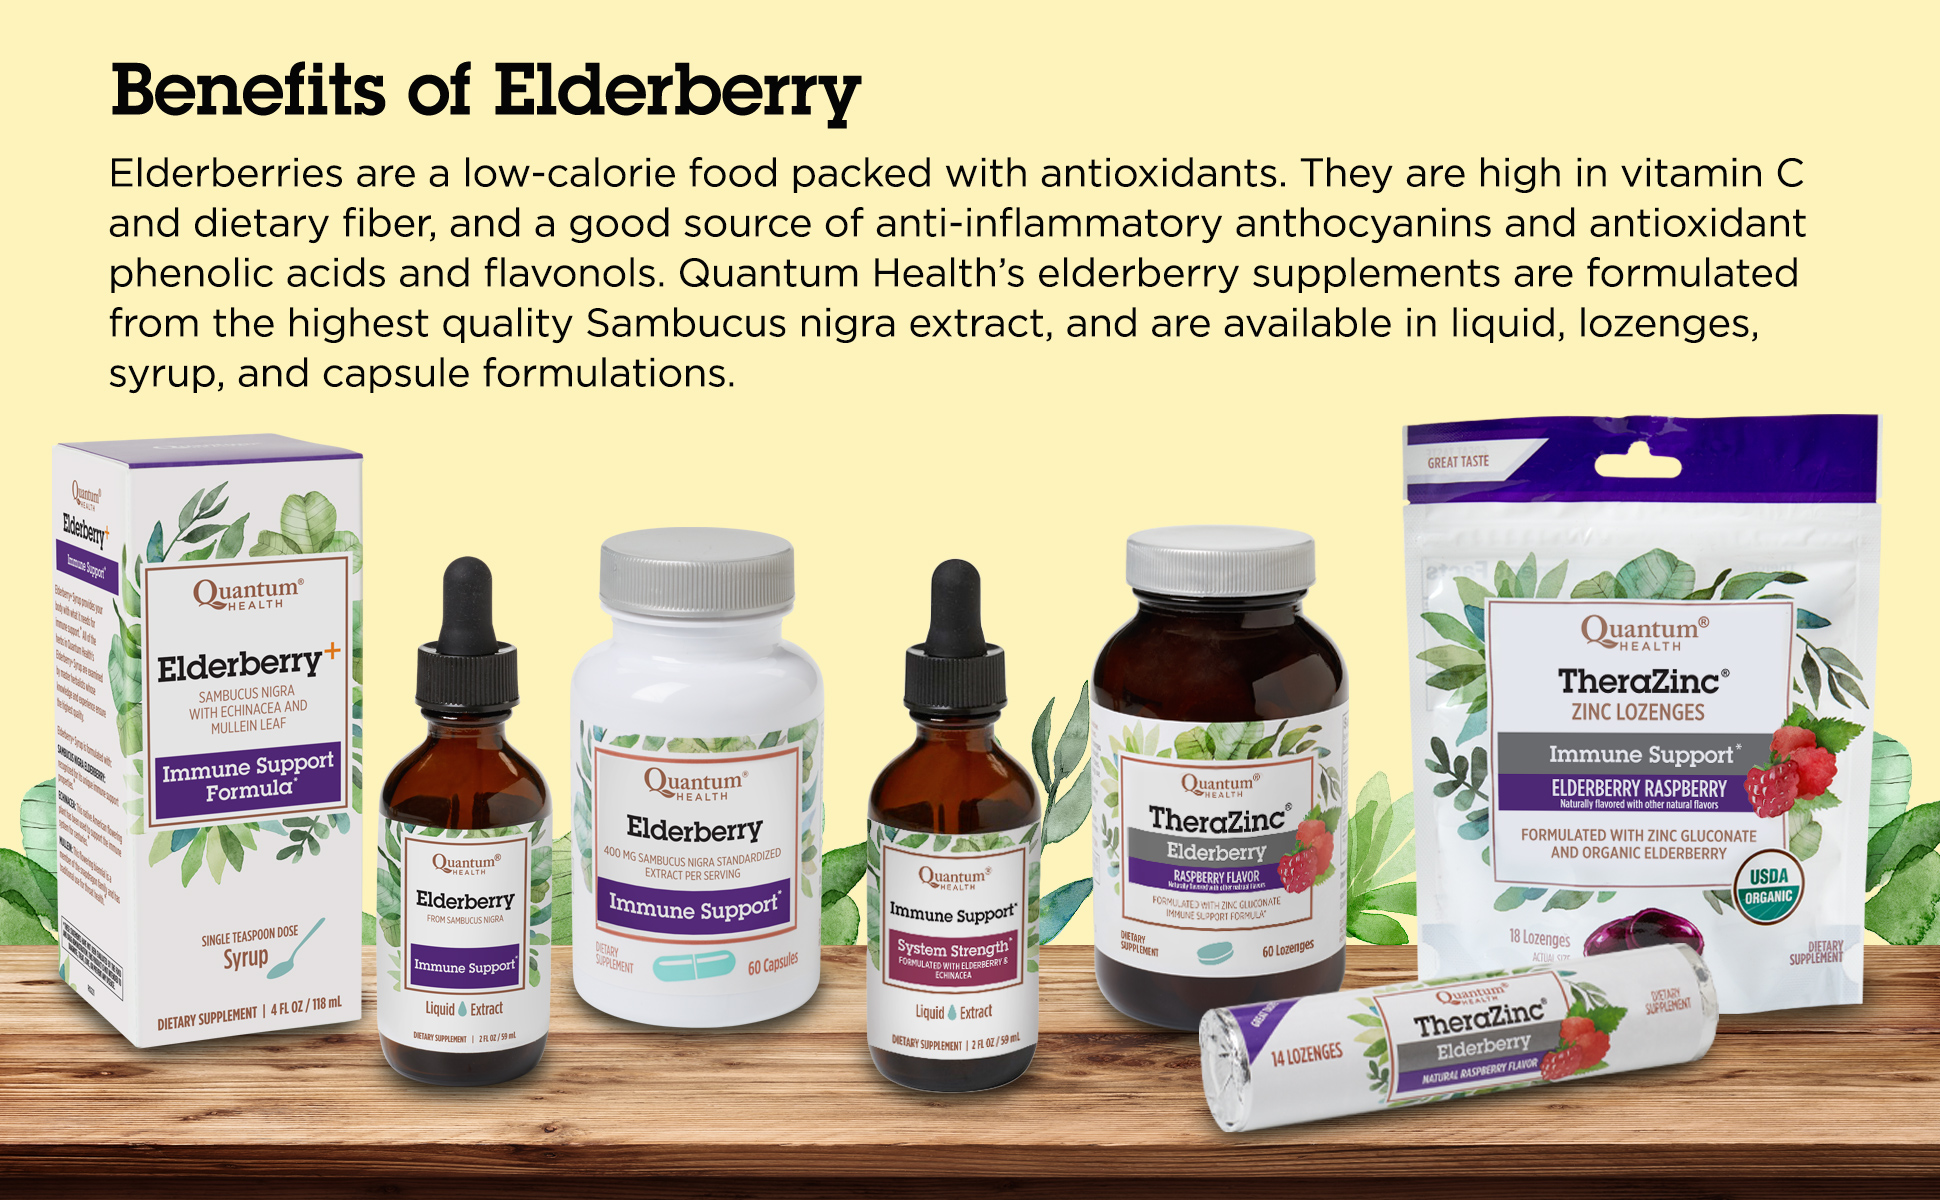 Group of Quantum Health products that contain elderberry on a wooden table.